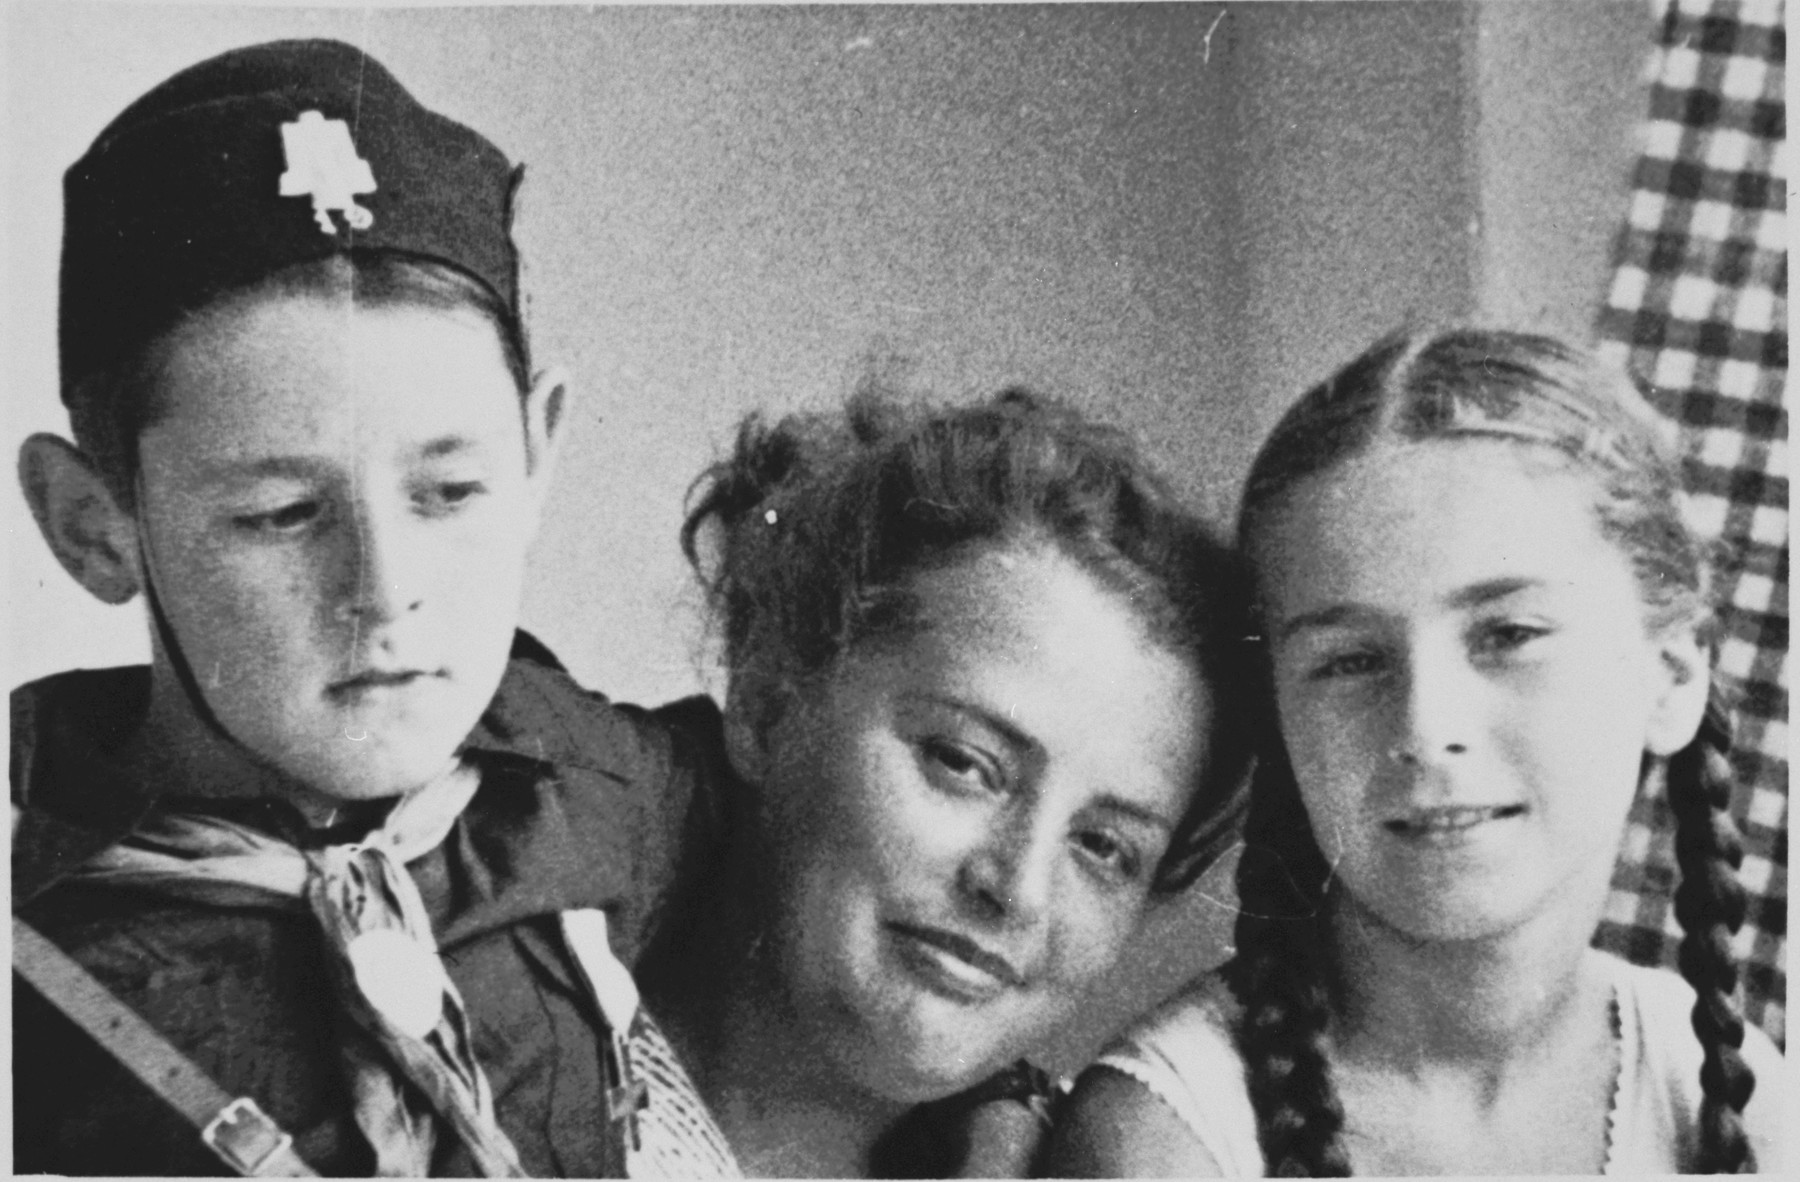 Close-up portrait of Sergio Minerbi, his mother Fanny and non-Jewish friend taken in the summer of 1938, on the eve of the Racial Laws.  Sergio Minerbi is wearing a Balilla uniform.